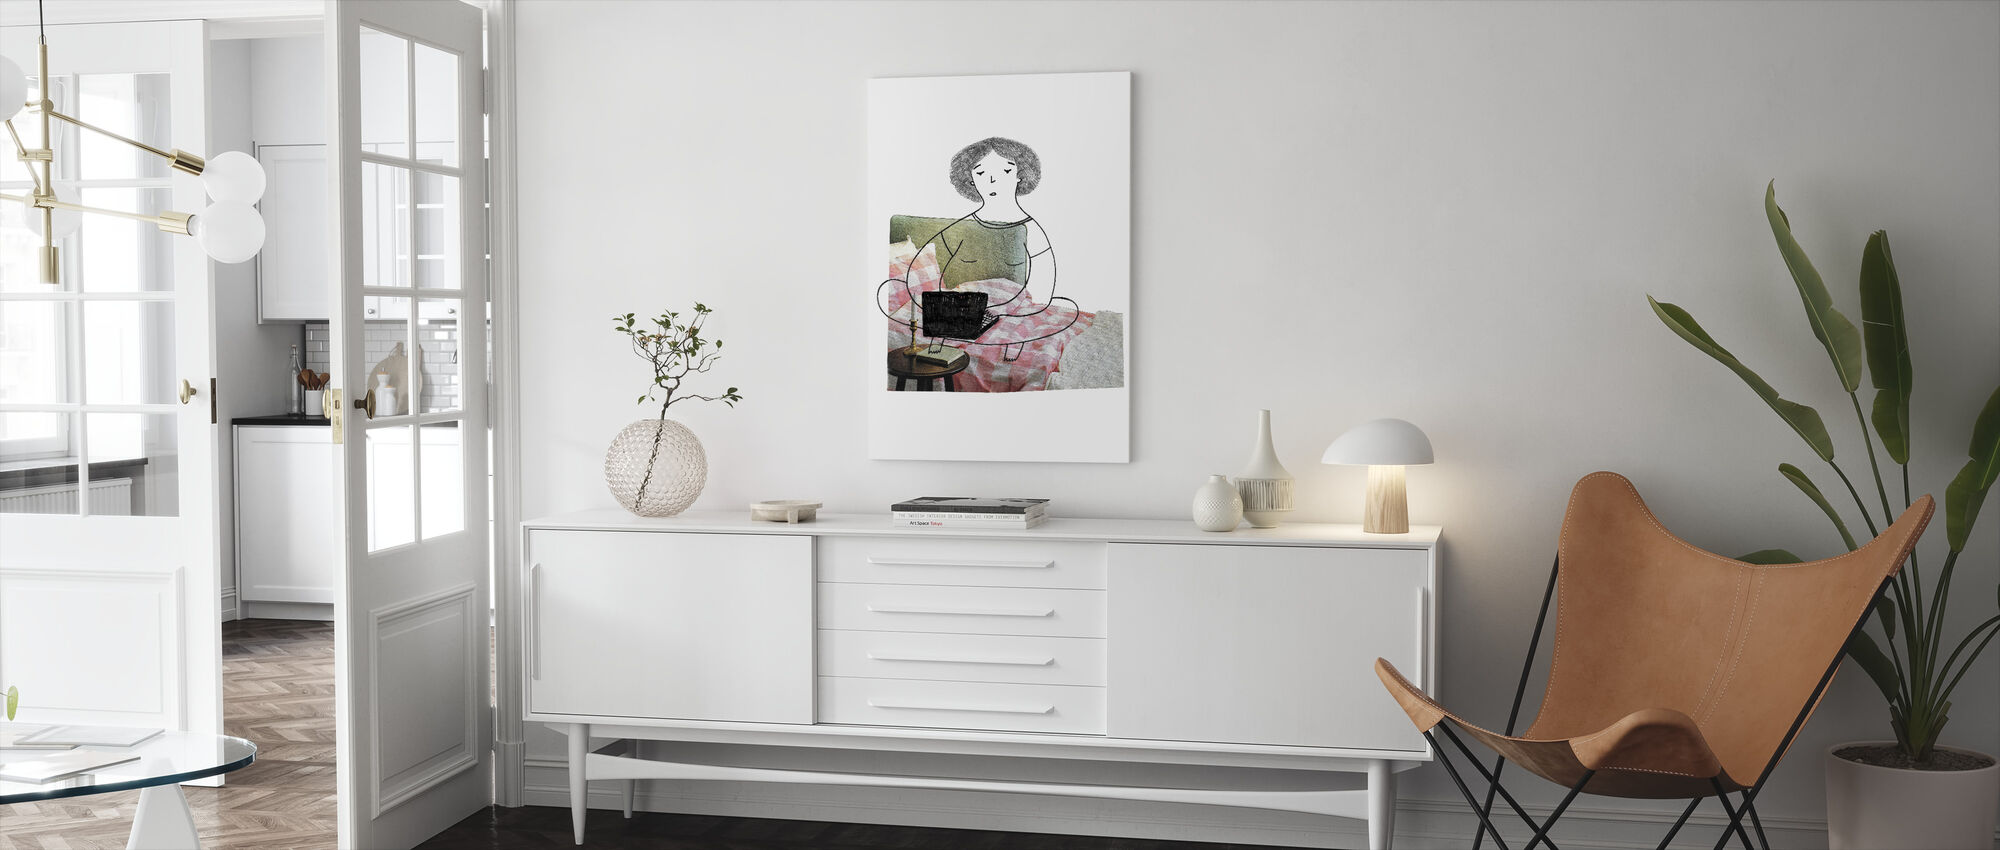 Woman Typing - Canvas print - Living Room